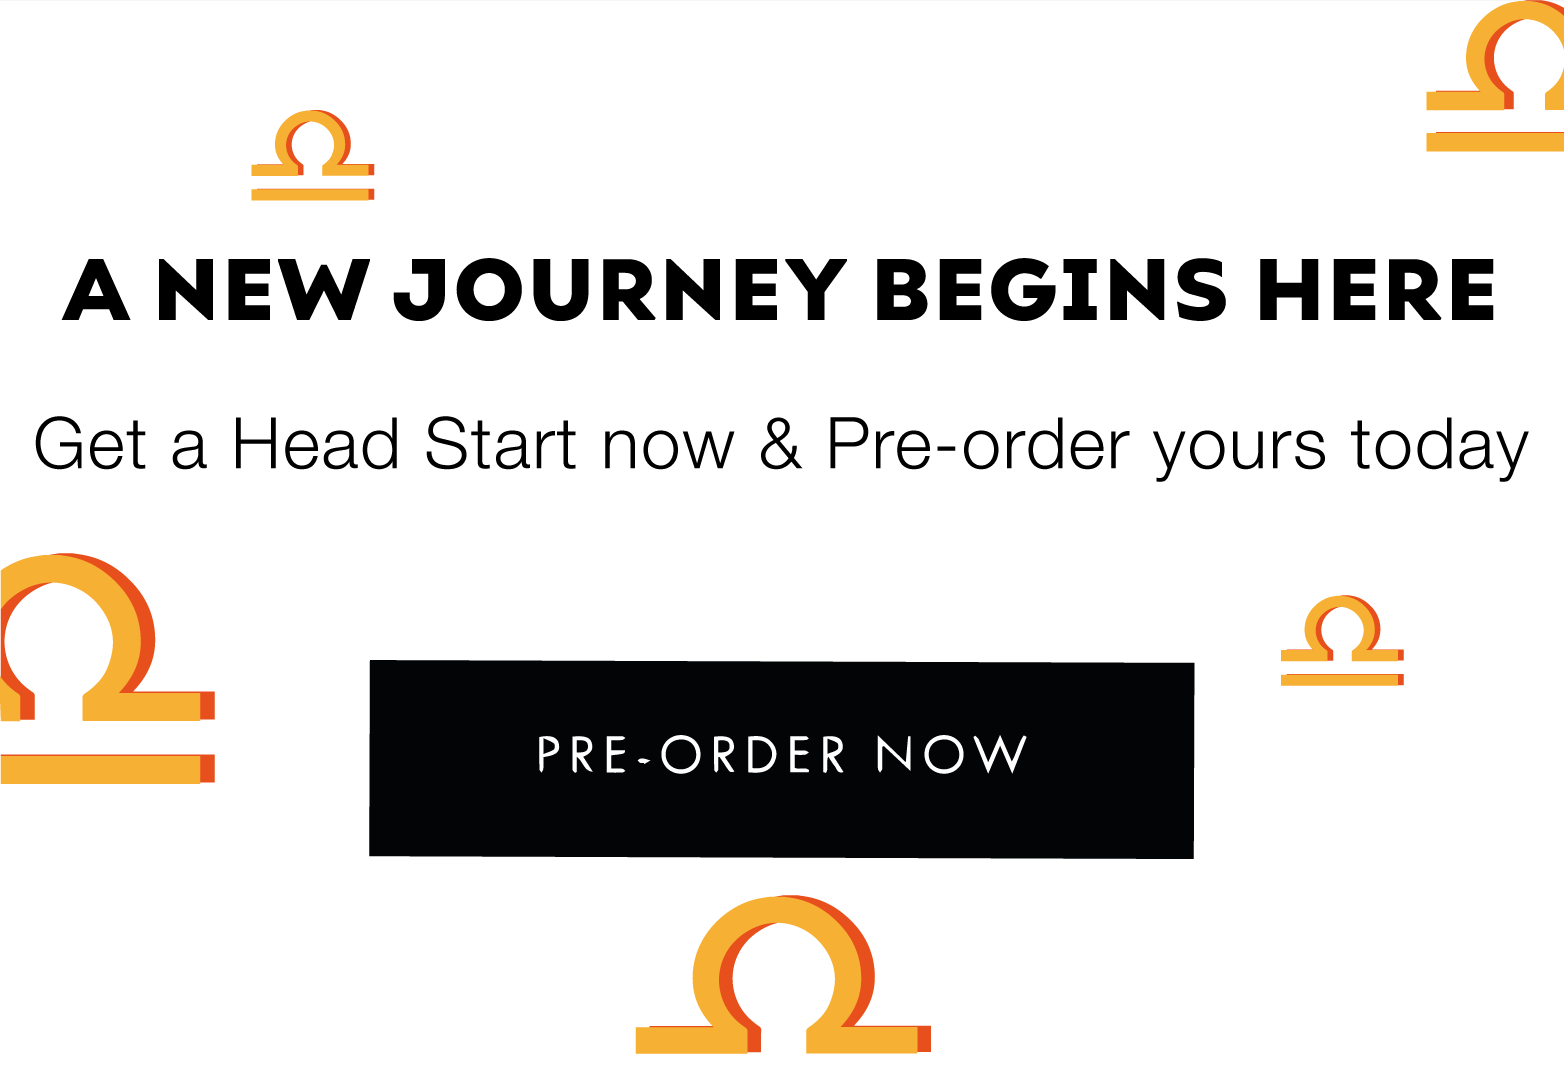 A New Journey Begins Here - Get a Head Start now & Pre-order yours today